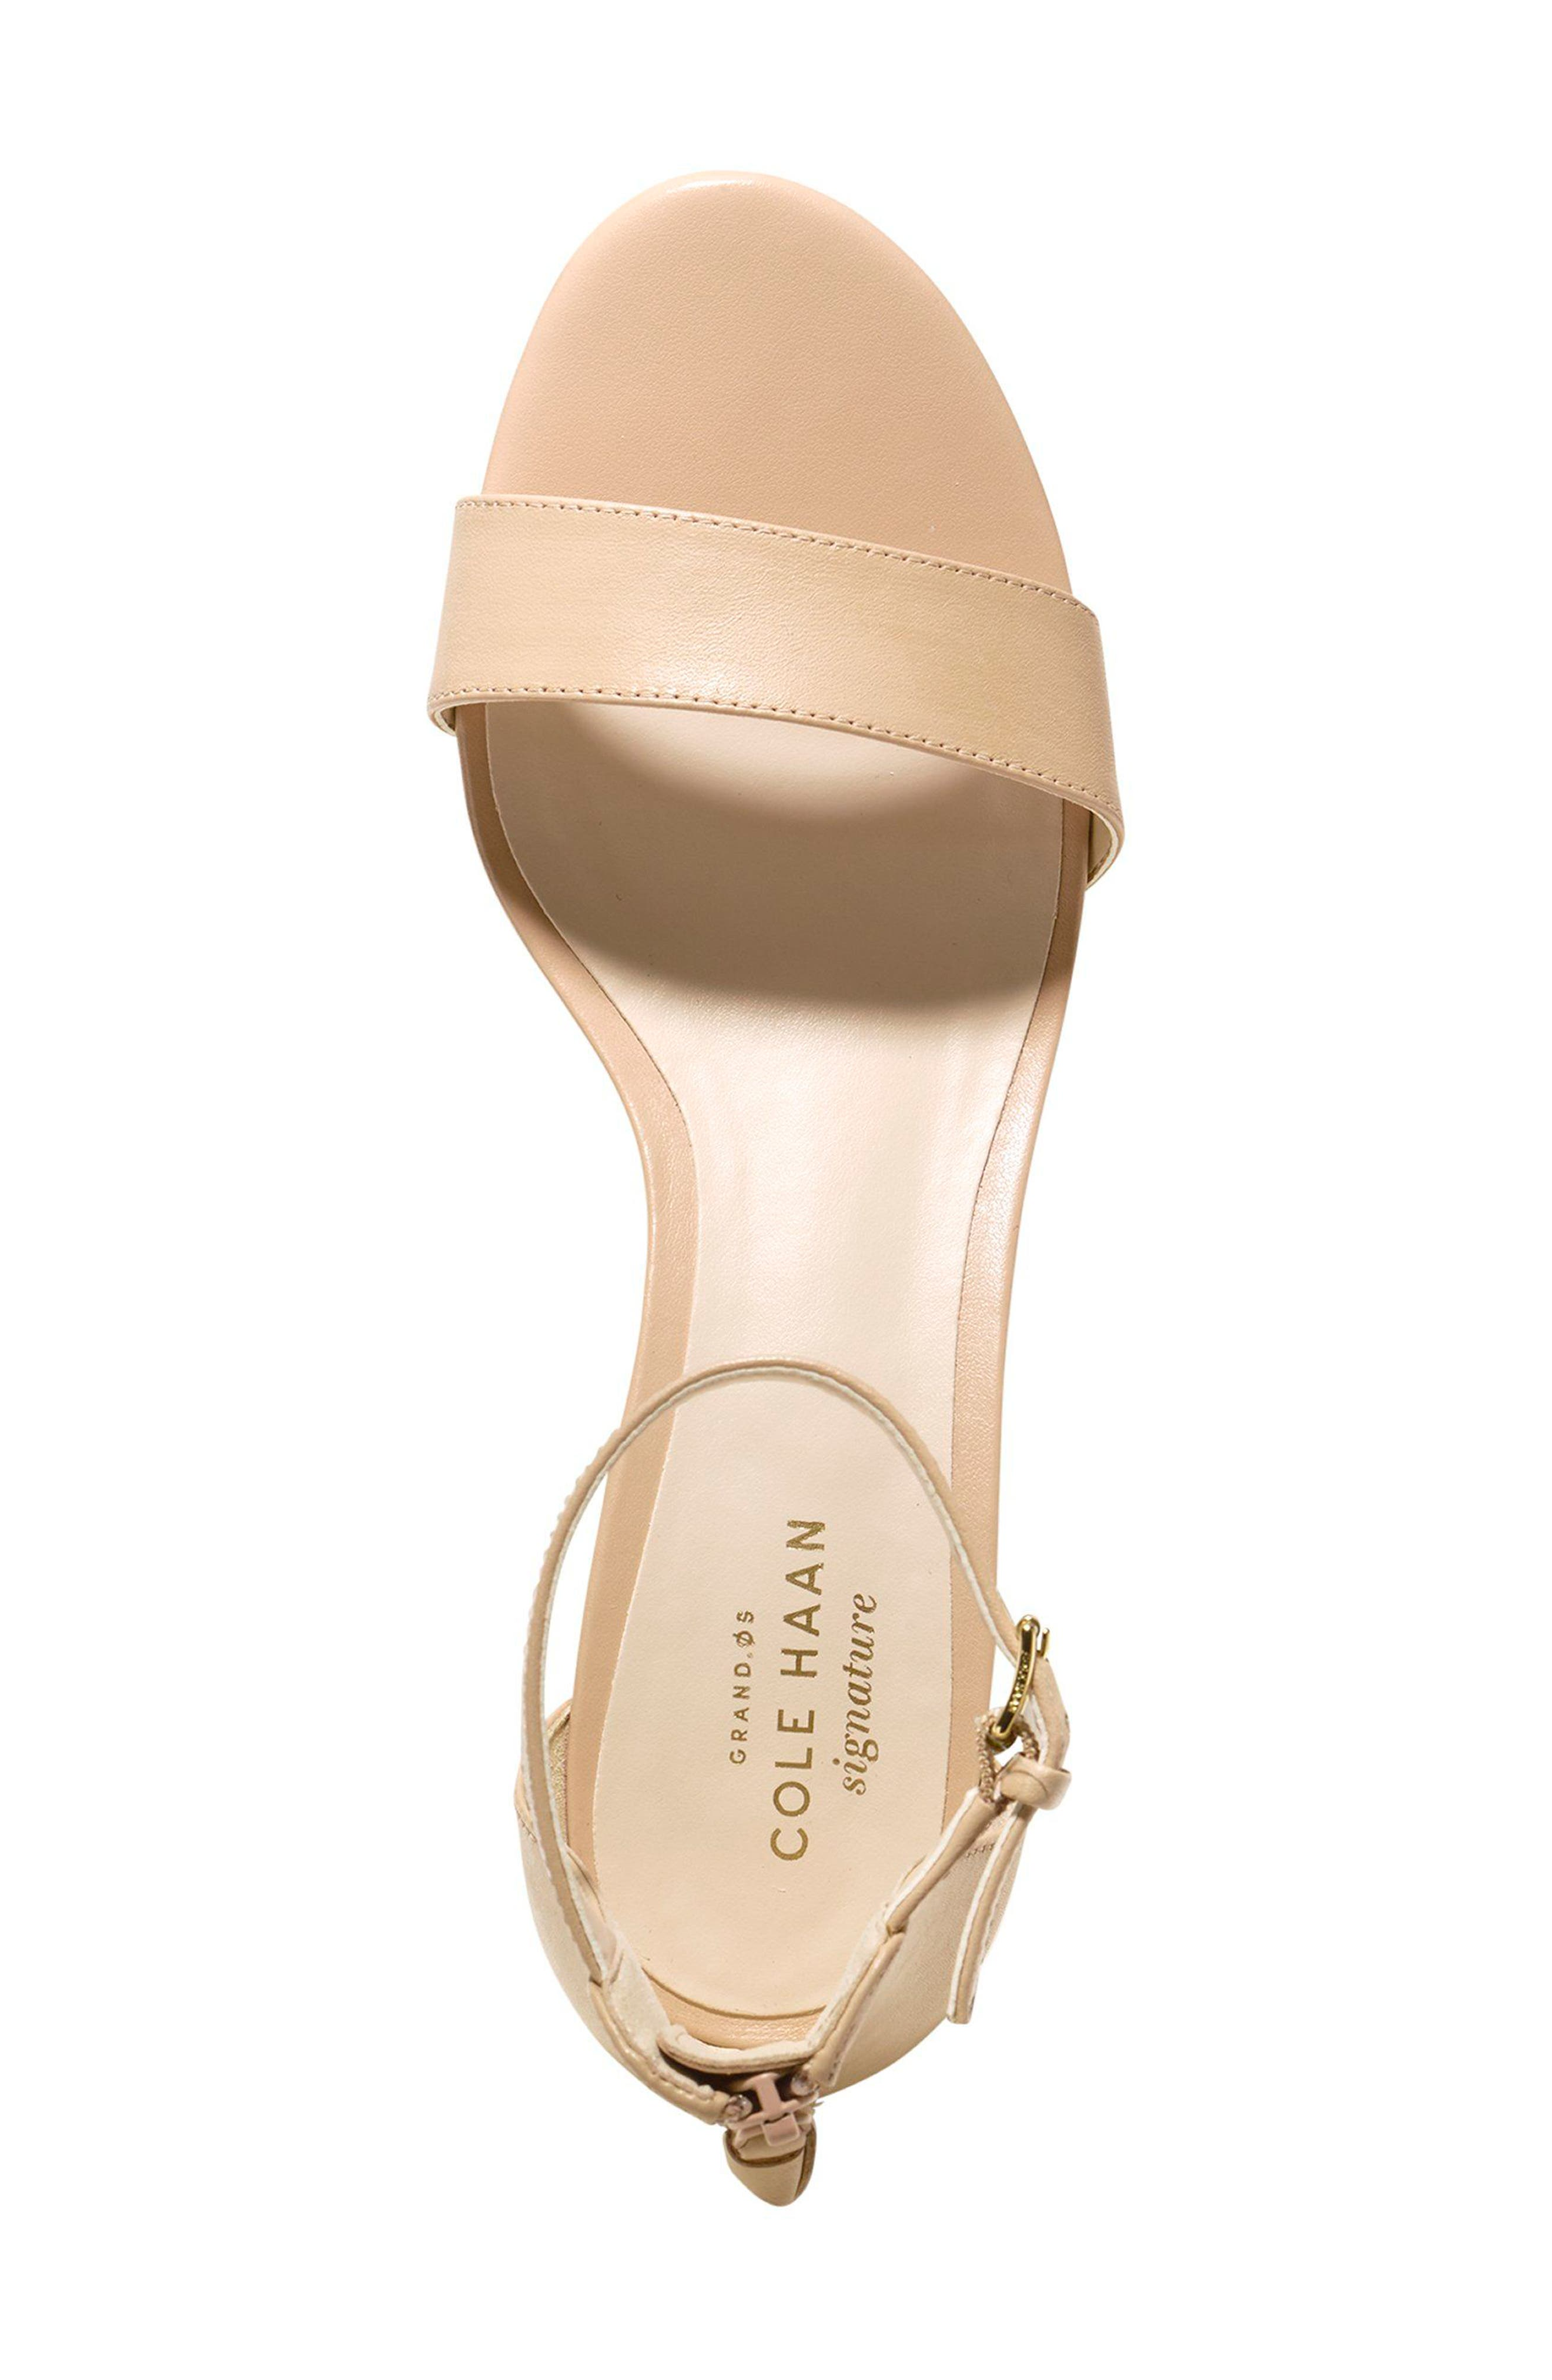 Adderly Sandal,                             Alternate thumbnail 3, color,                             NUDE LEATHER